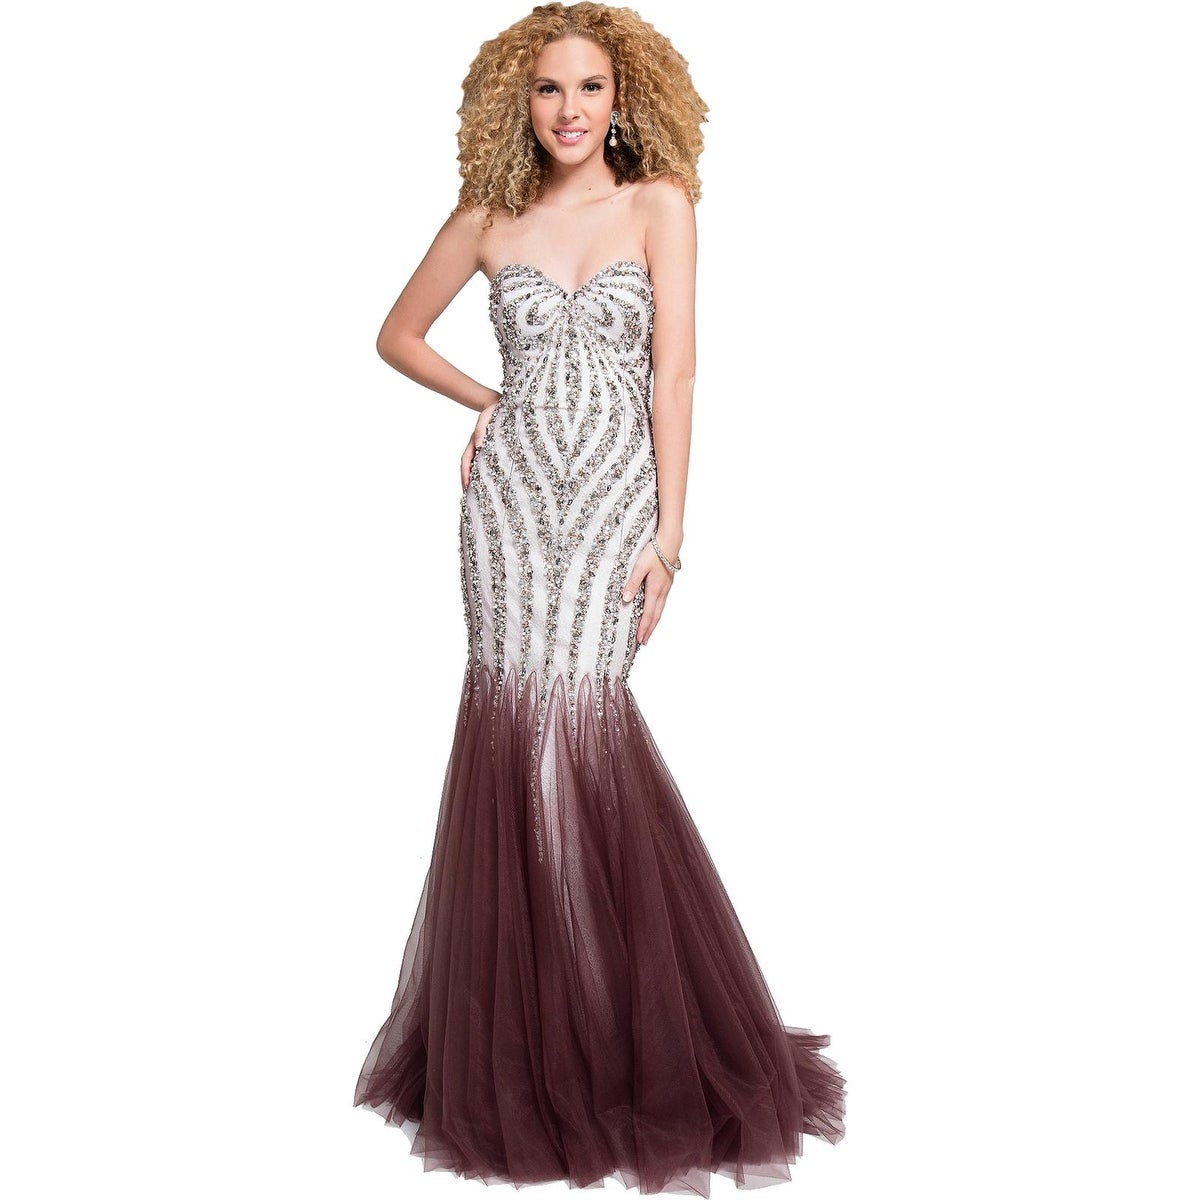 ca54a64b60 Terani Couture Homecoming Dresses